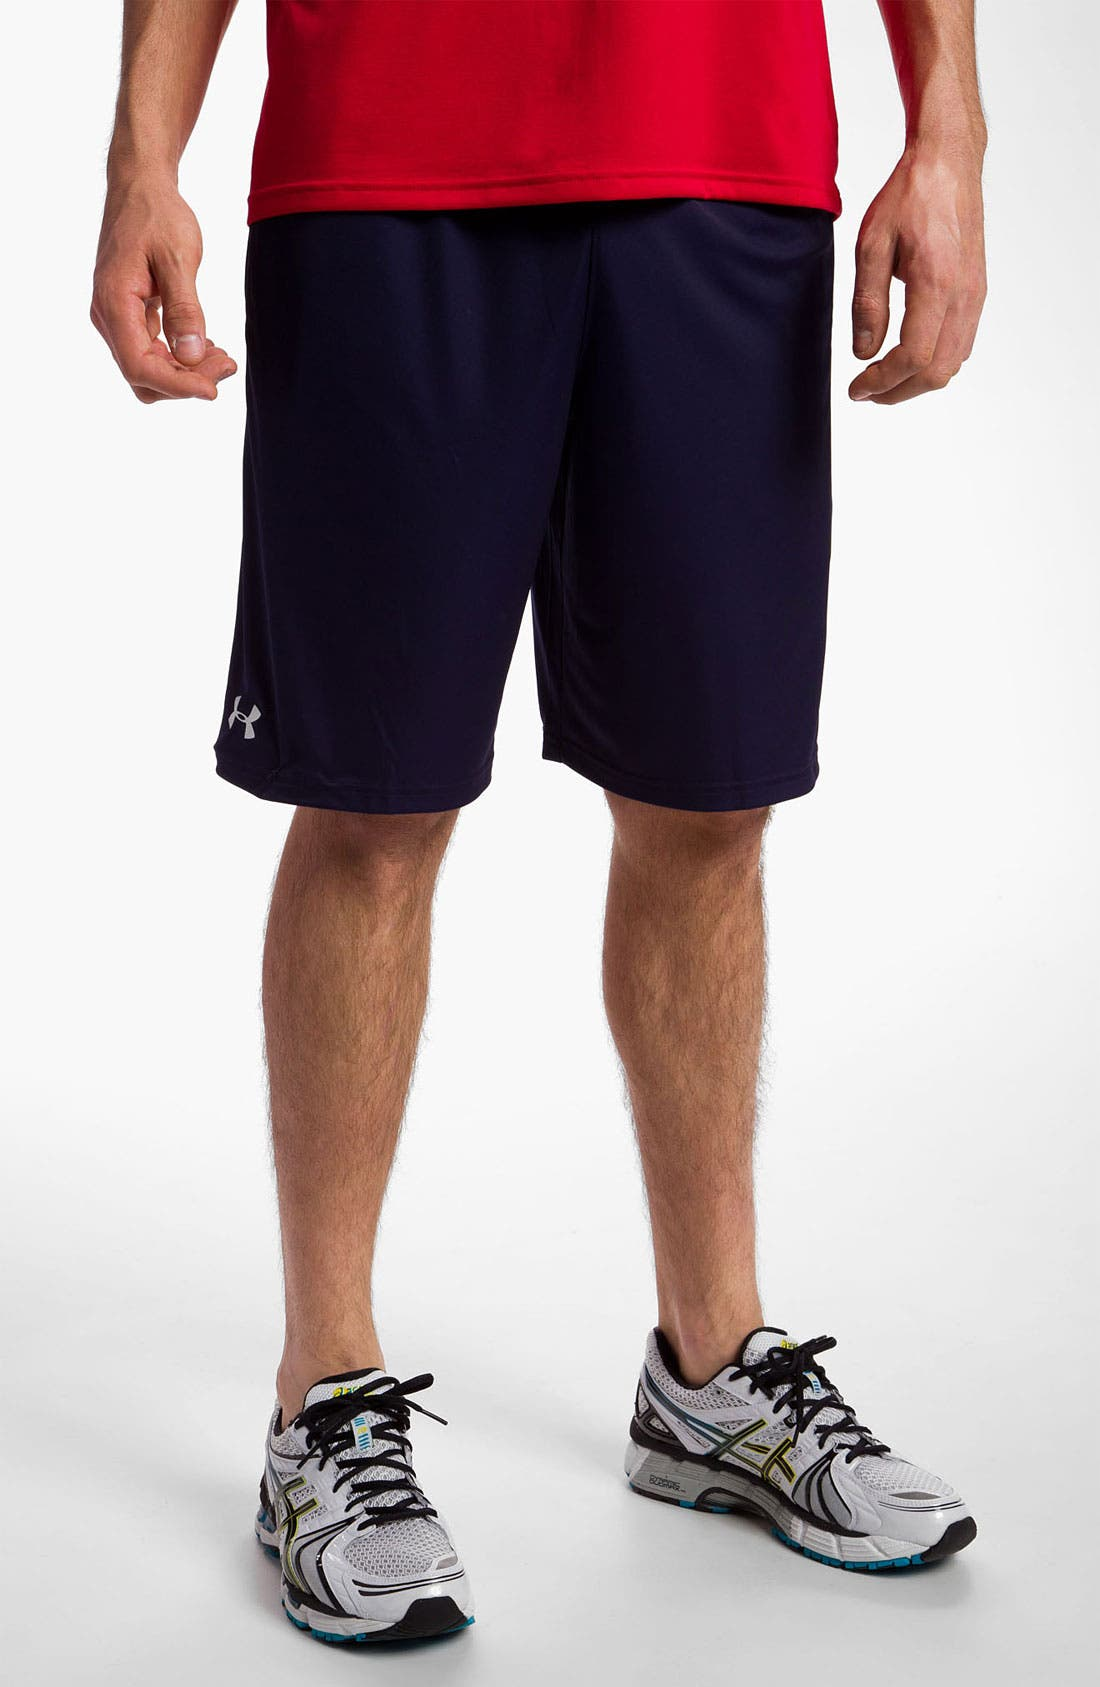 Alternate Image 1 Selected - Under Armour 'Micro' HeatGear™ Knit Shorts